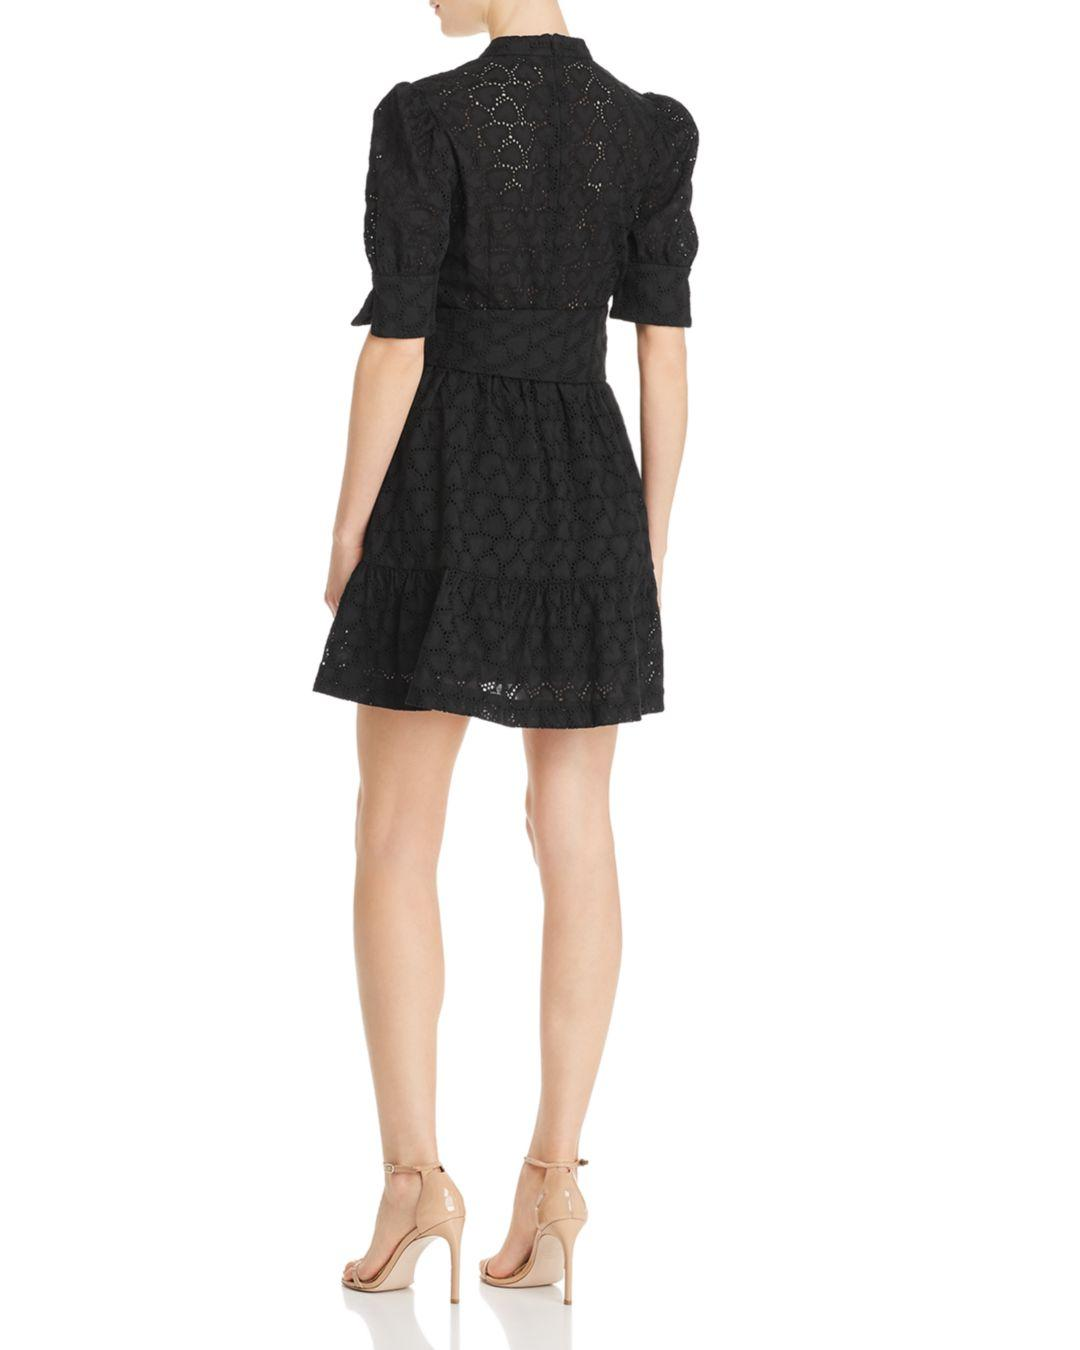 Valentina Heart Motif Eyelet Lyst Rebecca Vallance Lace Belted QrthdCBsx